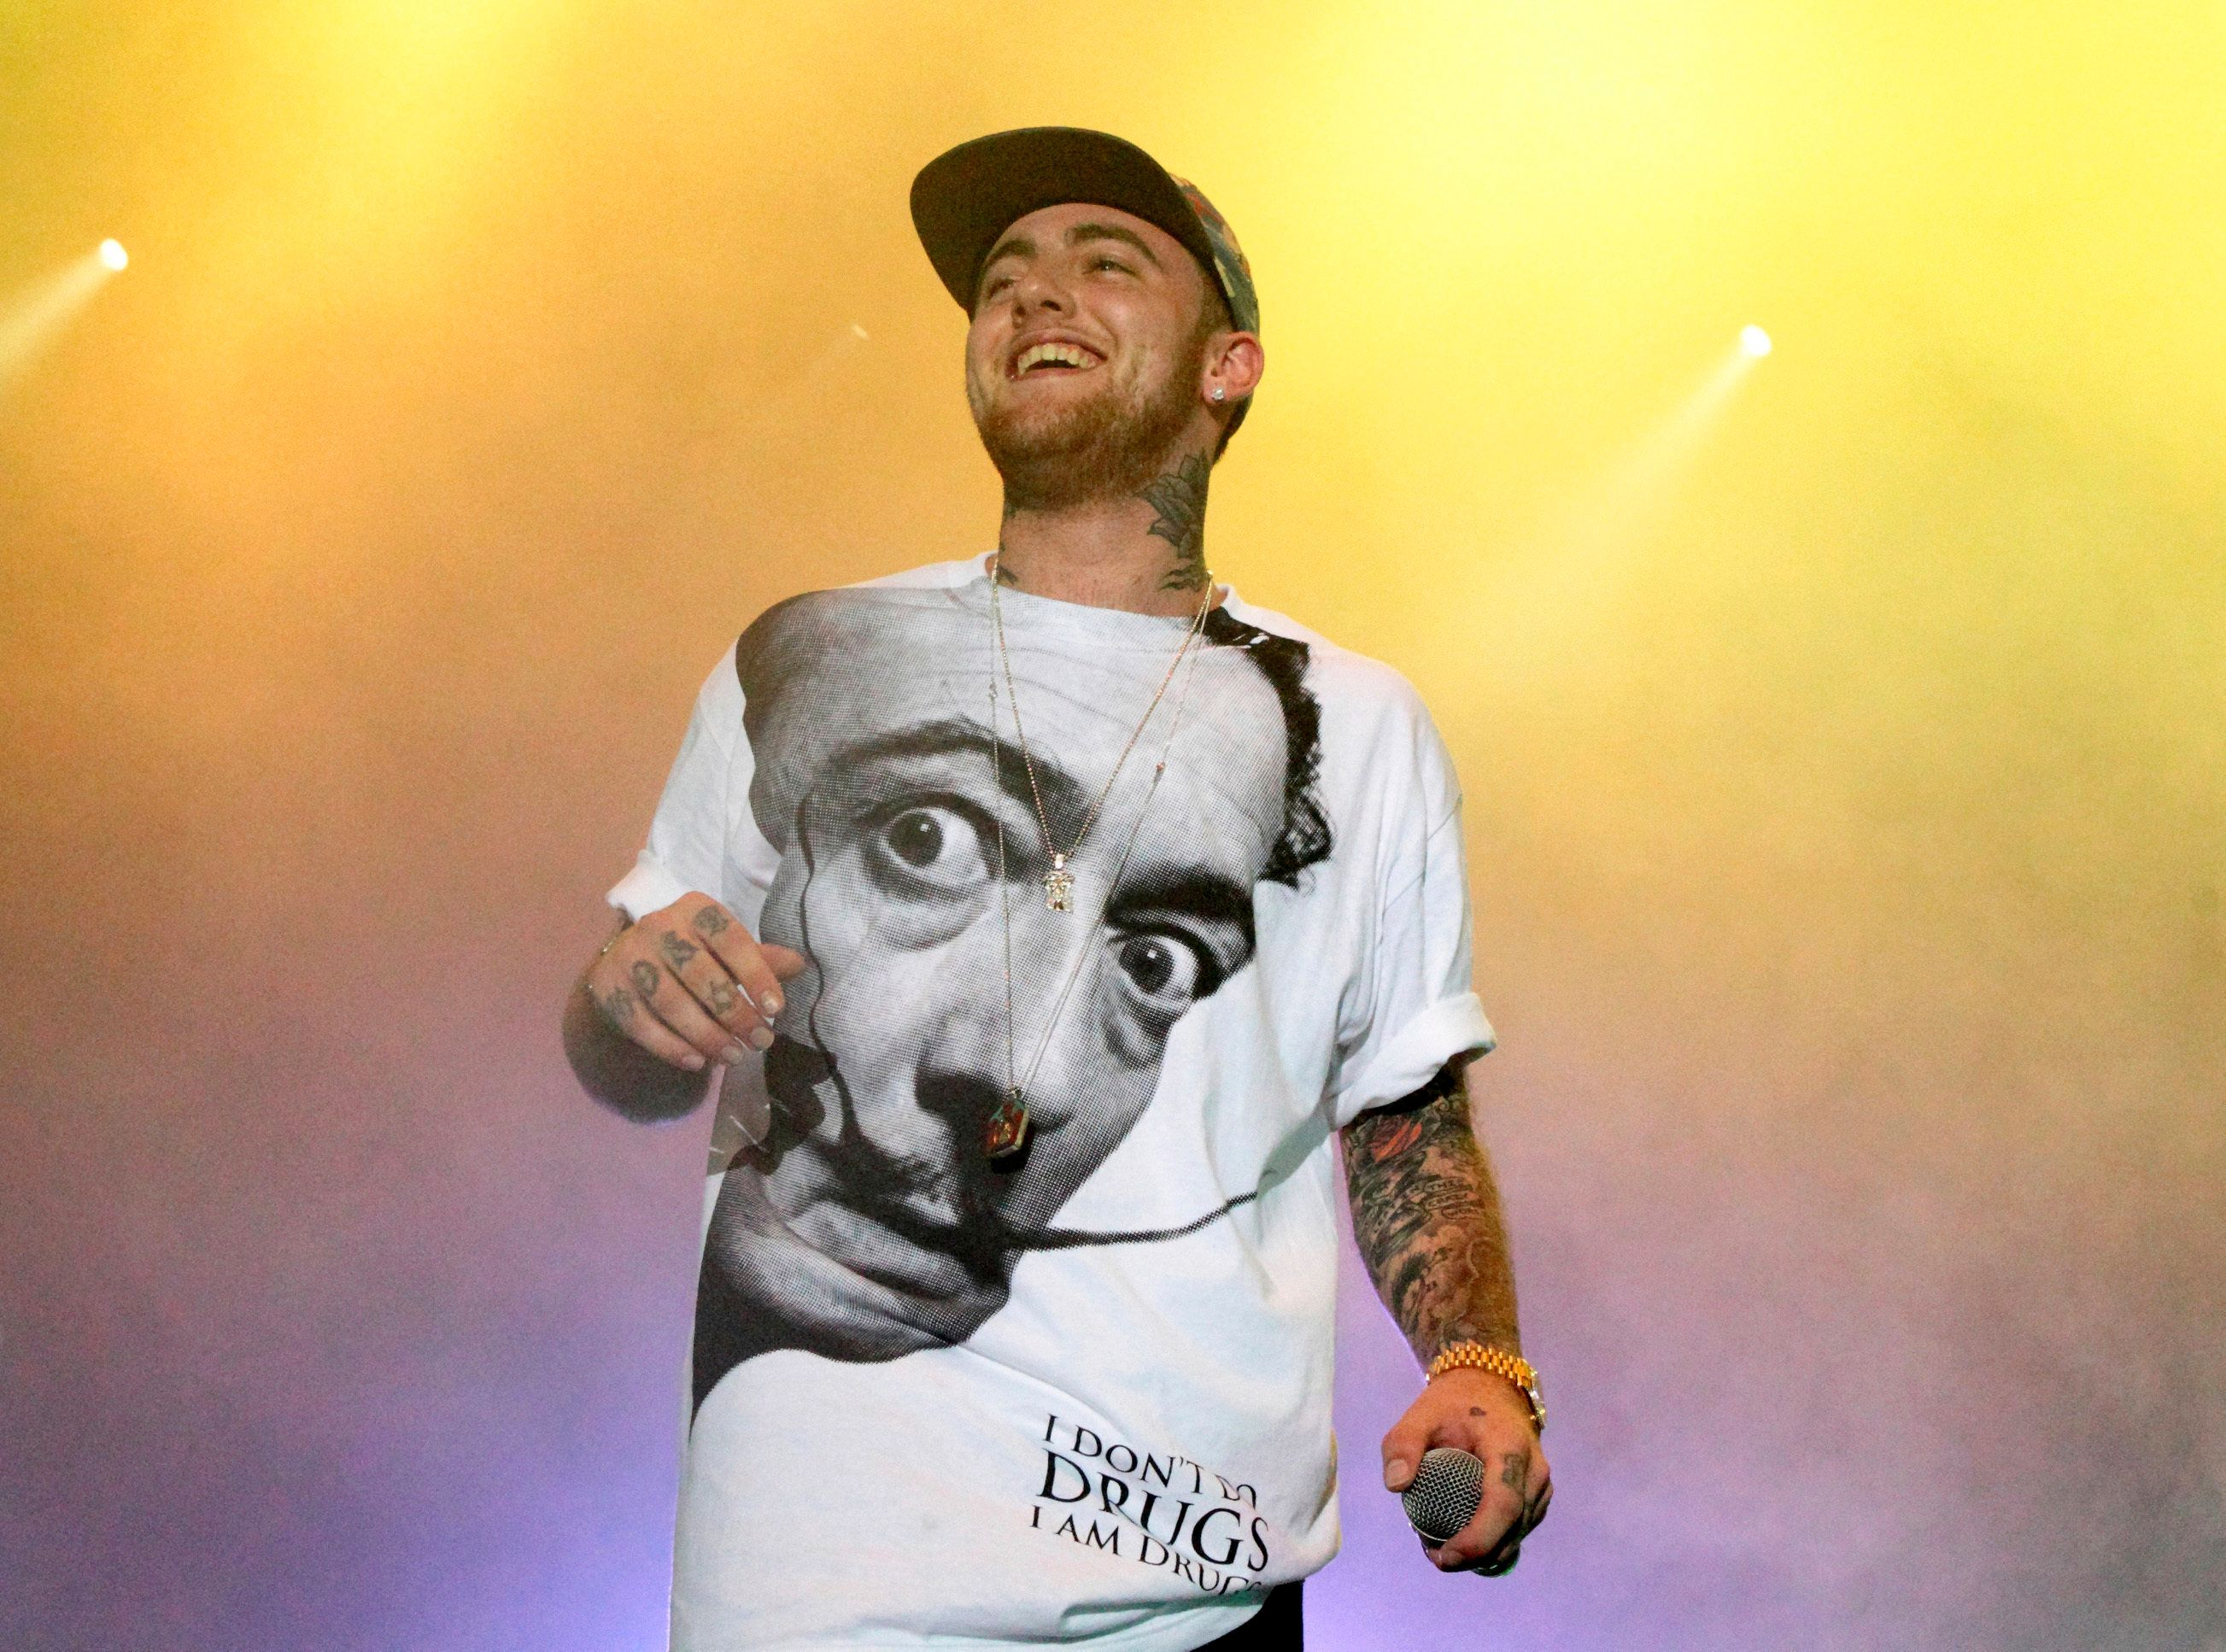 """FILE - In this July 13, 2013, file photo, Rapper Mac Miller performs on his Space Migration Tour at Festival Pier in Philadelphia. Chance the Rapper, John Mayer and SZA are set to perform at a benefit concert for late rapper Mac Miller. Live Nation announced Tuesday that Travis Scott, Miguel and Ty Dolla $ign will also perform at the """"Mac Miller: A Celebration of Life"""" concert on Oct. 31 at Los Angeles' Greek Theater. (Photo by Owen Sweeney/Invision/AP, File)"""